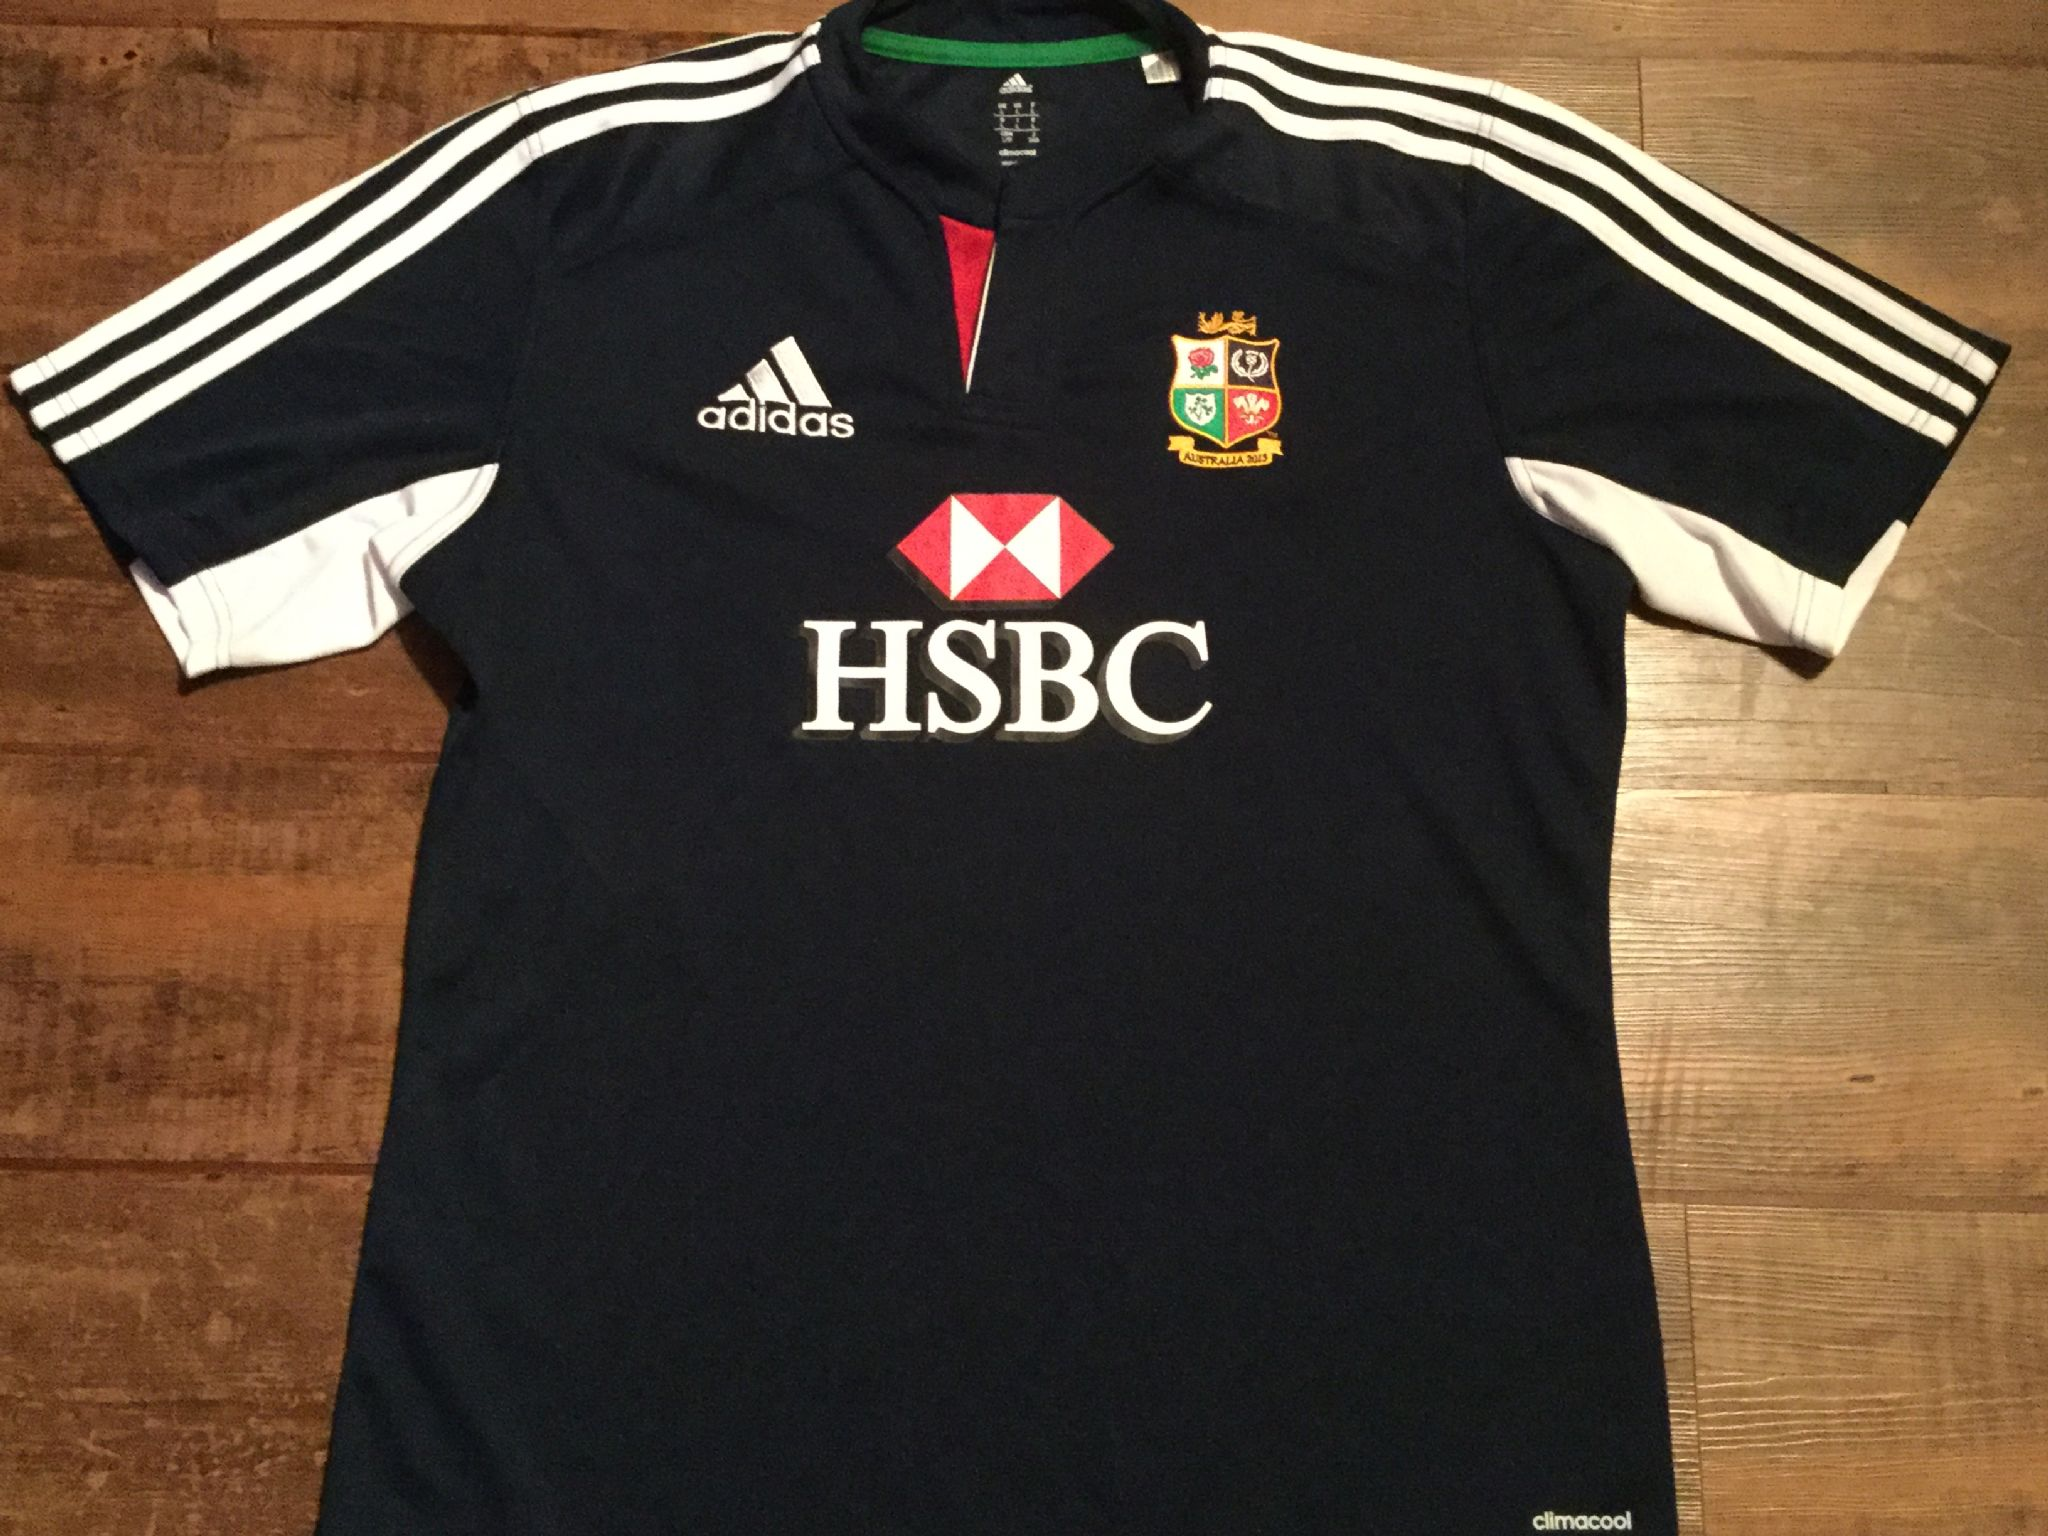 d0ab1849 Classic Rugby Shirts | 2013 British Lions Vintage Old Retro Jerseys